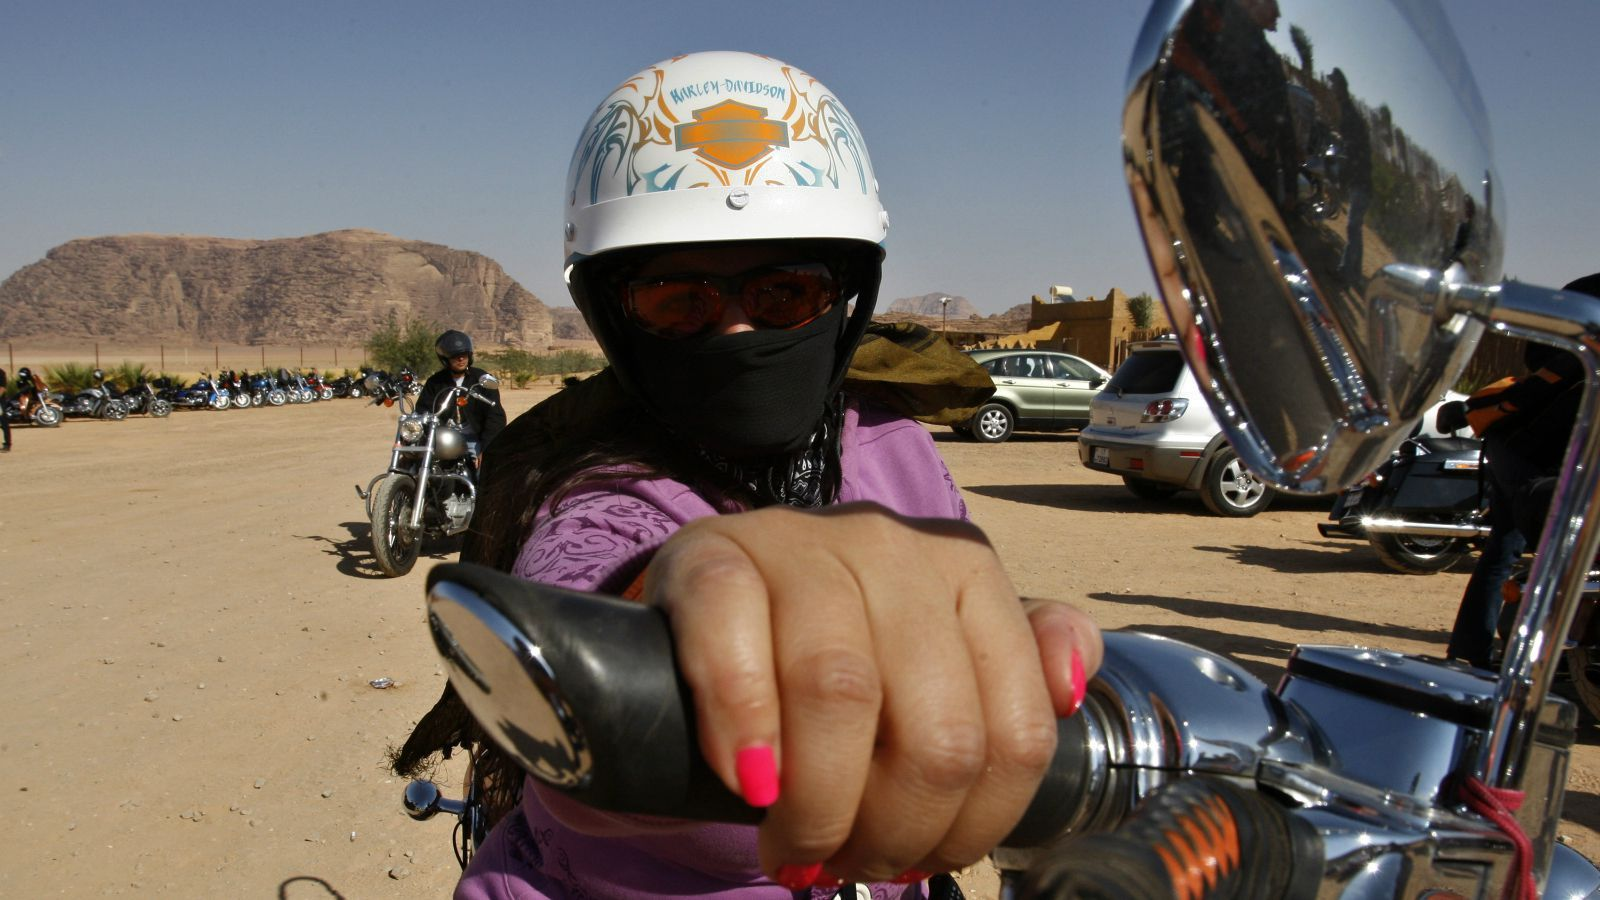 Car driving gloves india - 10 Reasons Why More Indian Women Should Ride A Motorcycle